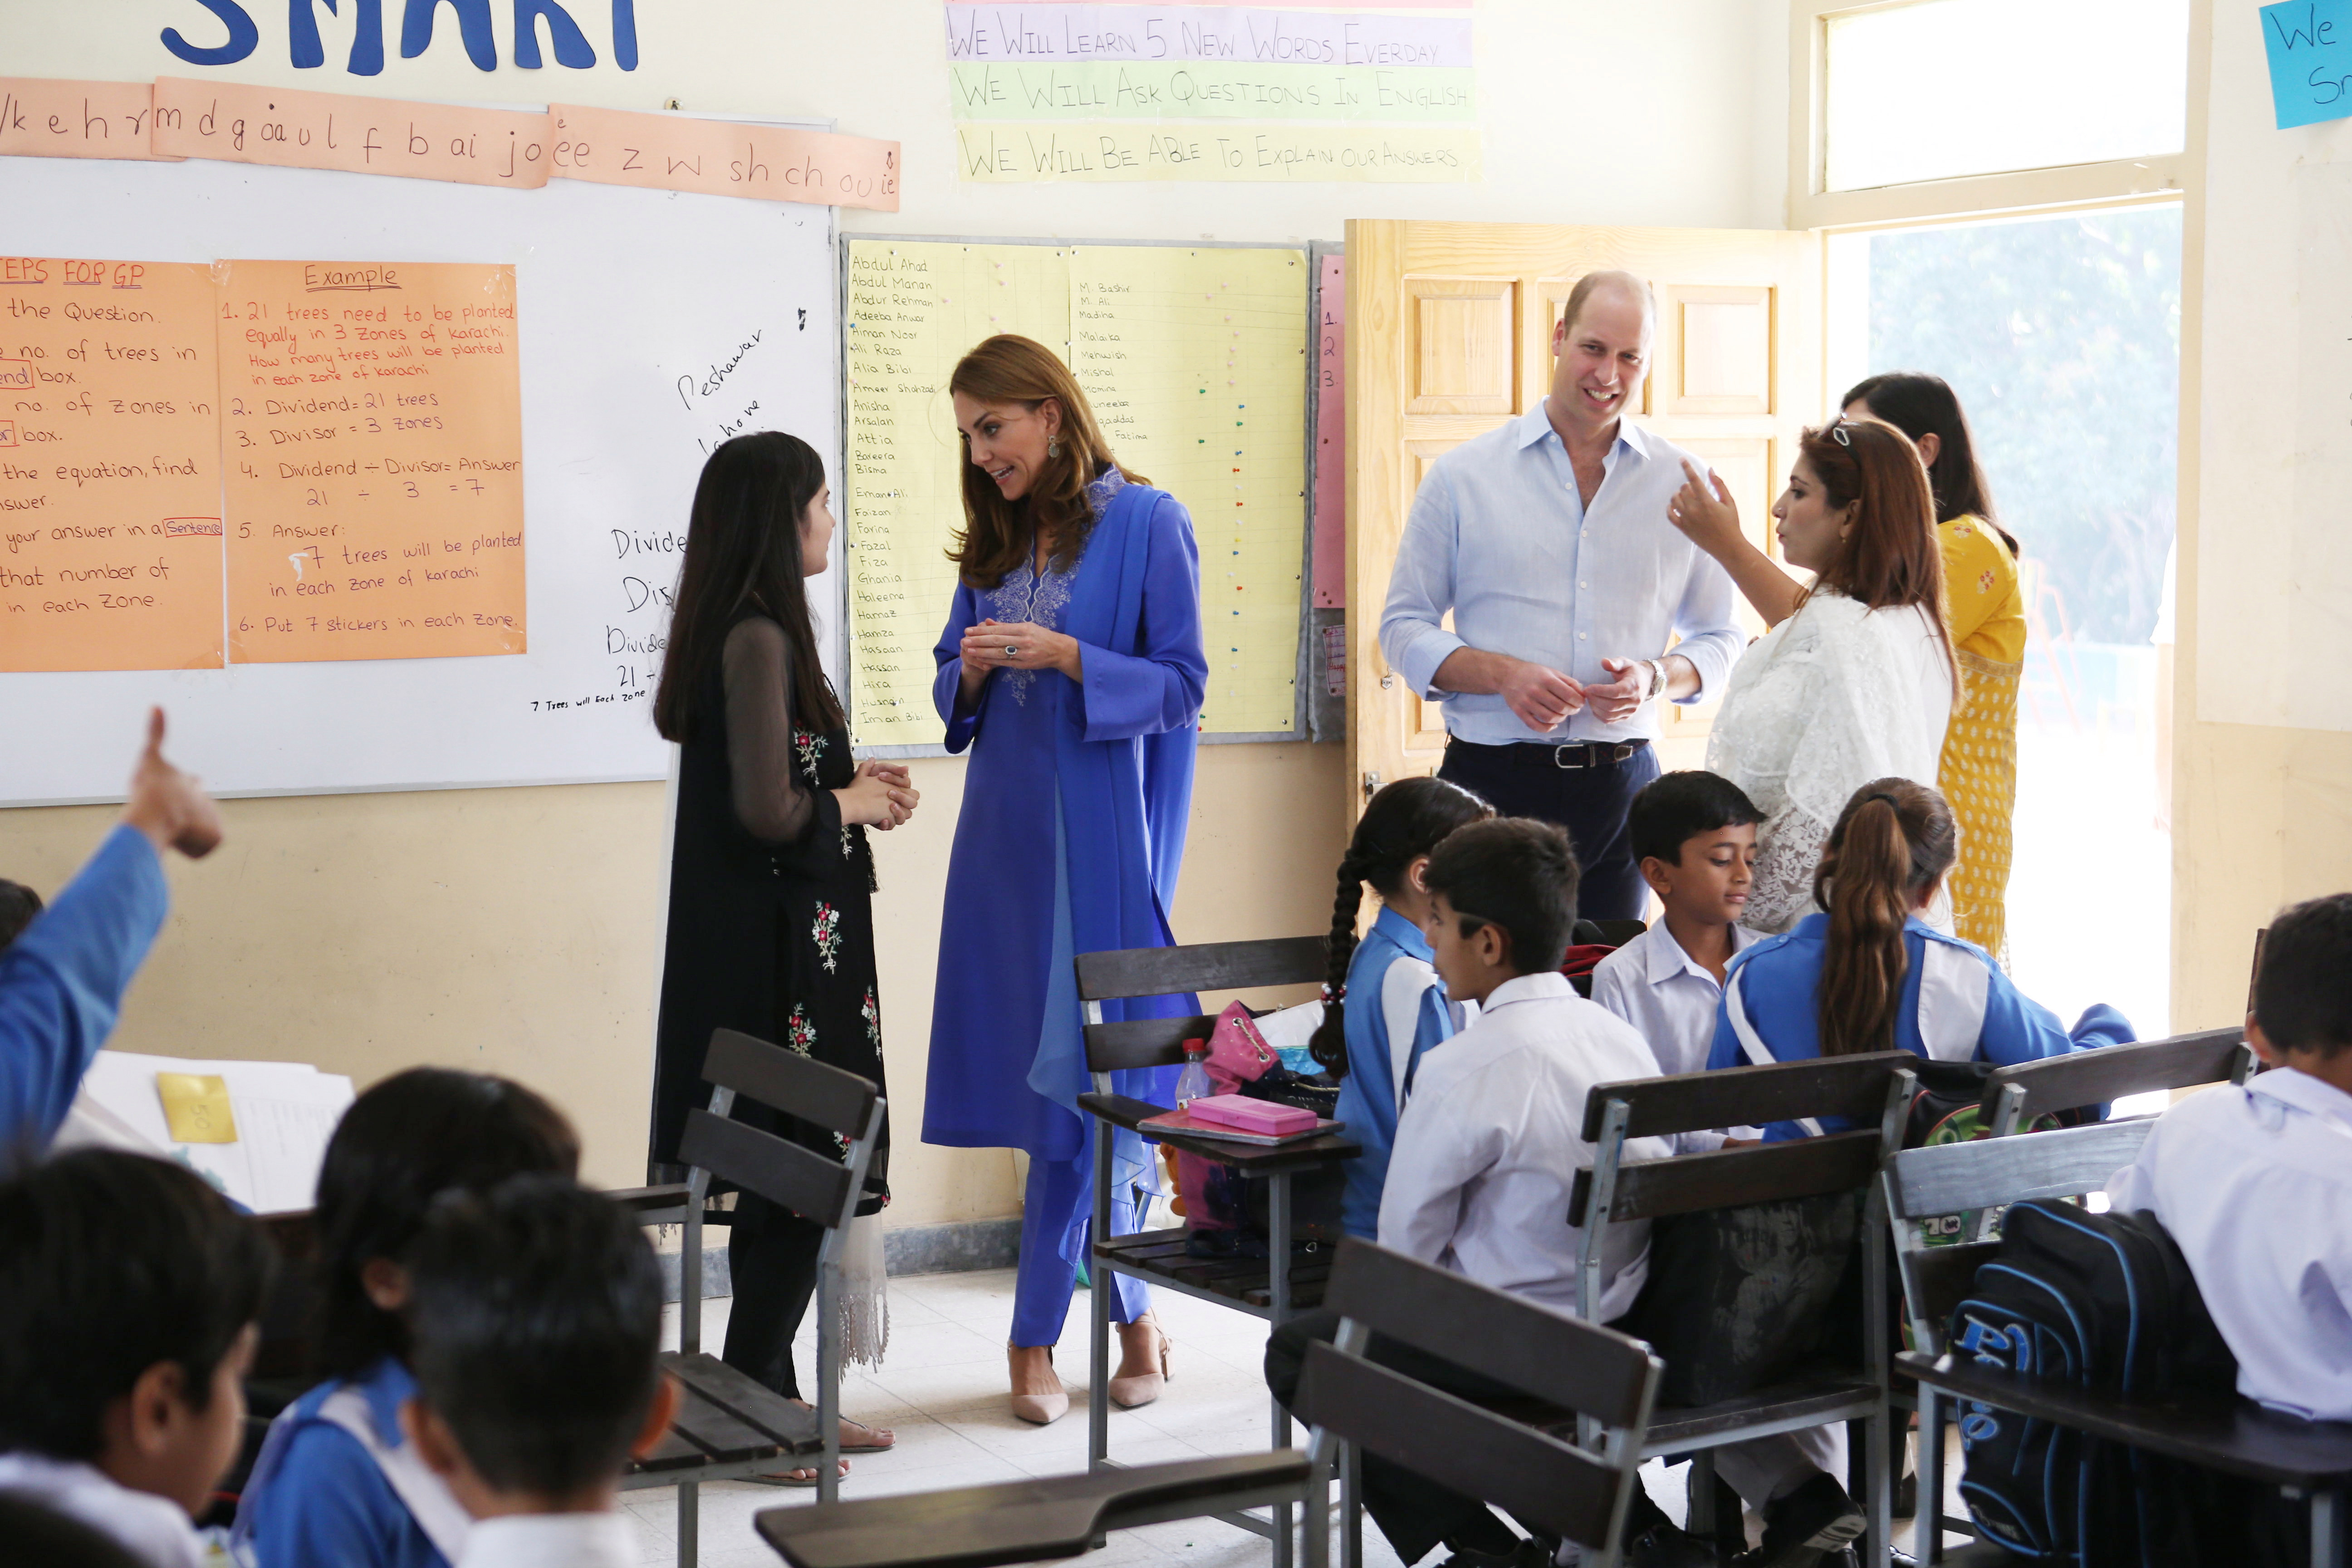 The royals then inspect a classroom